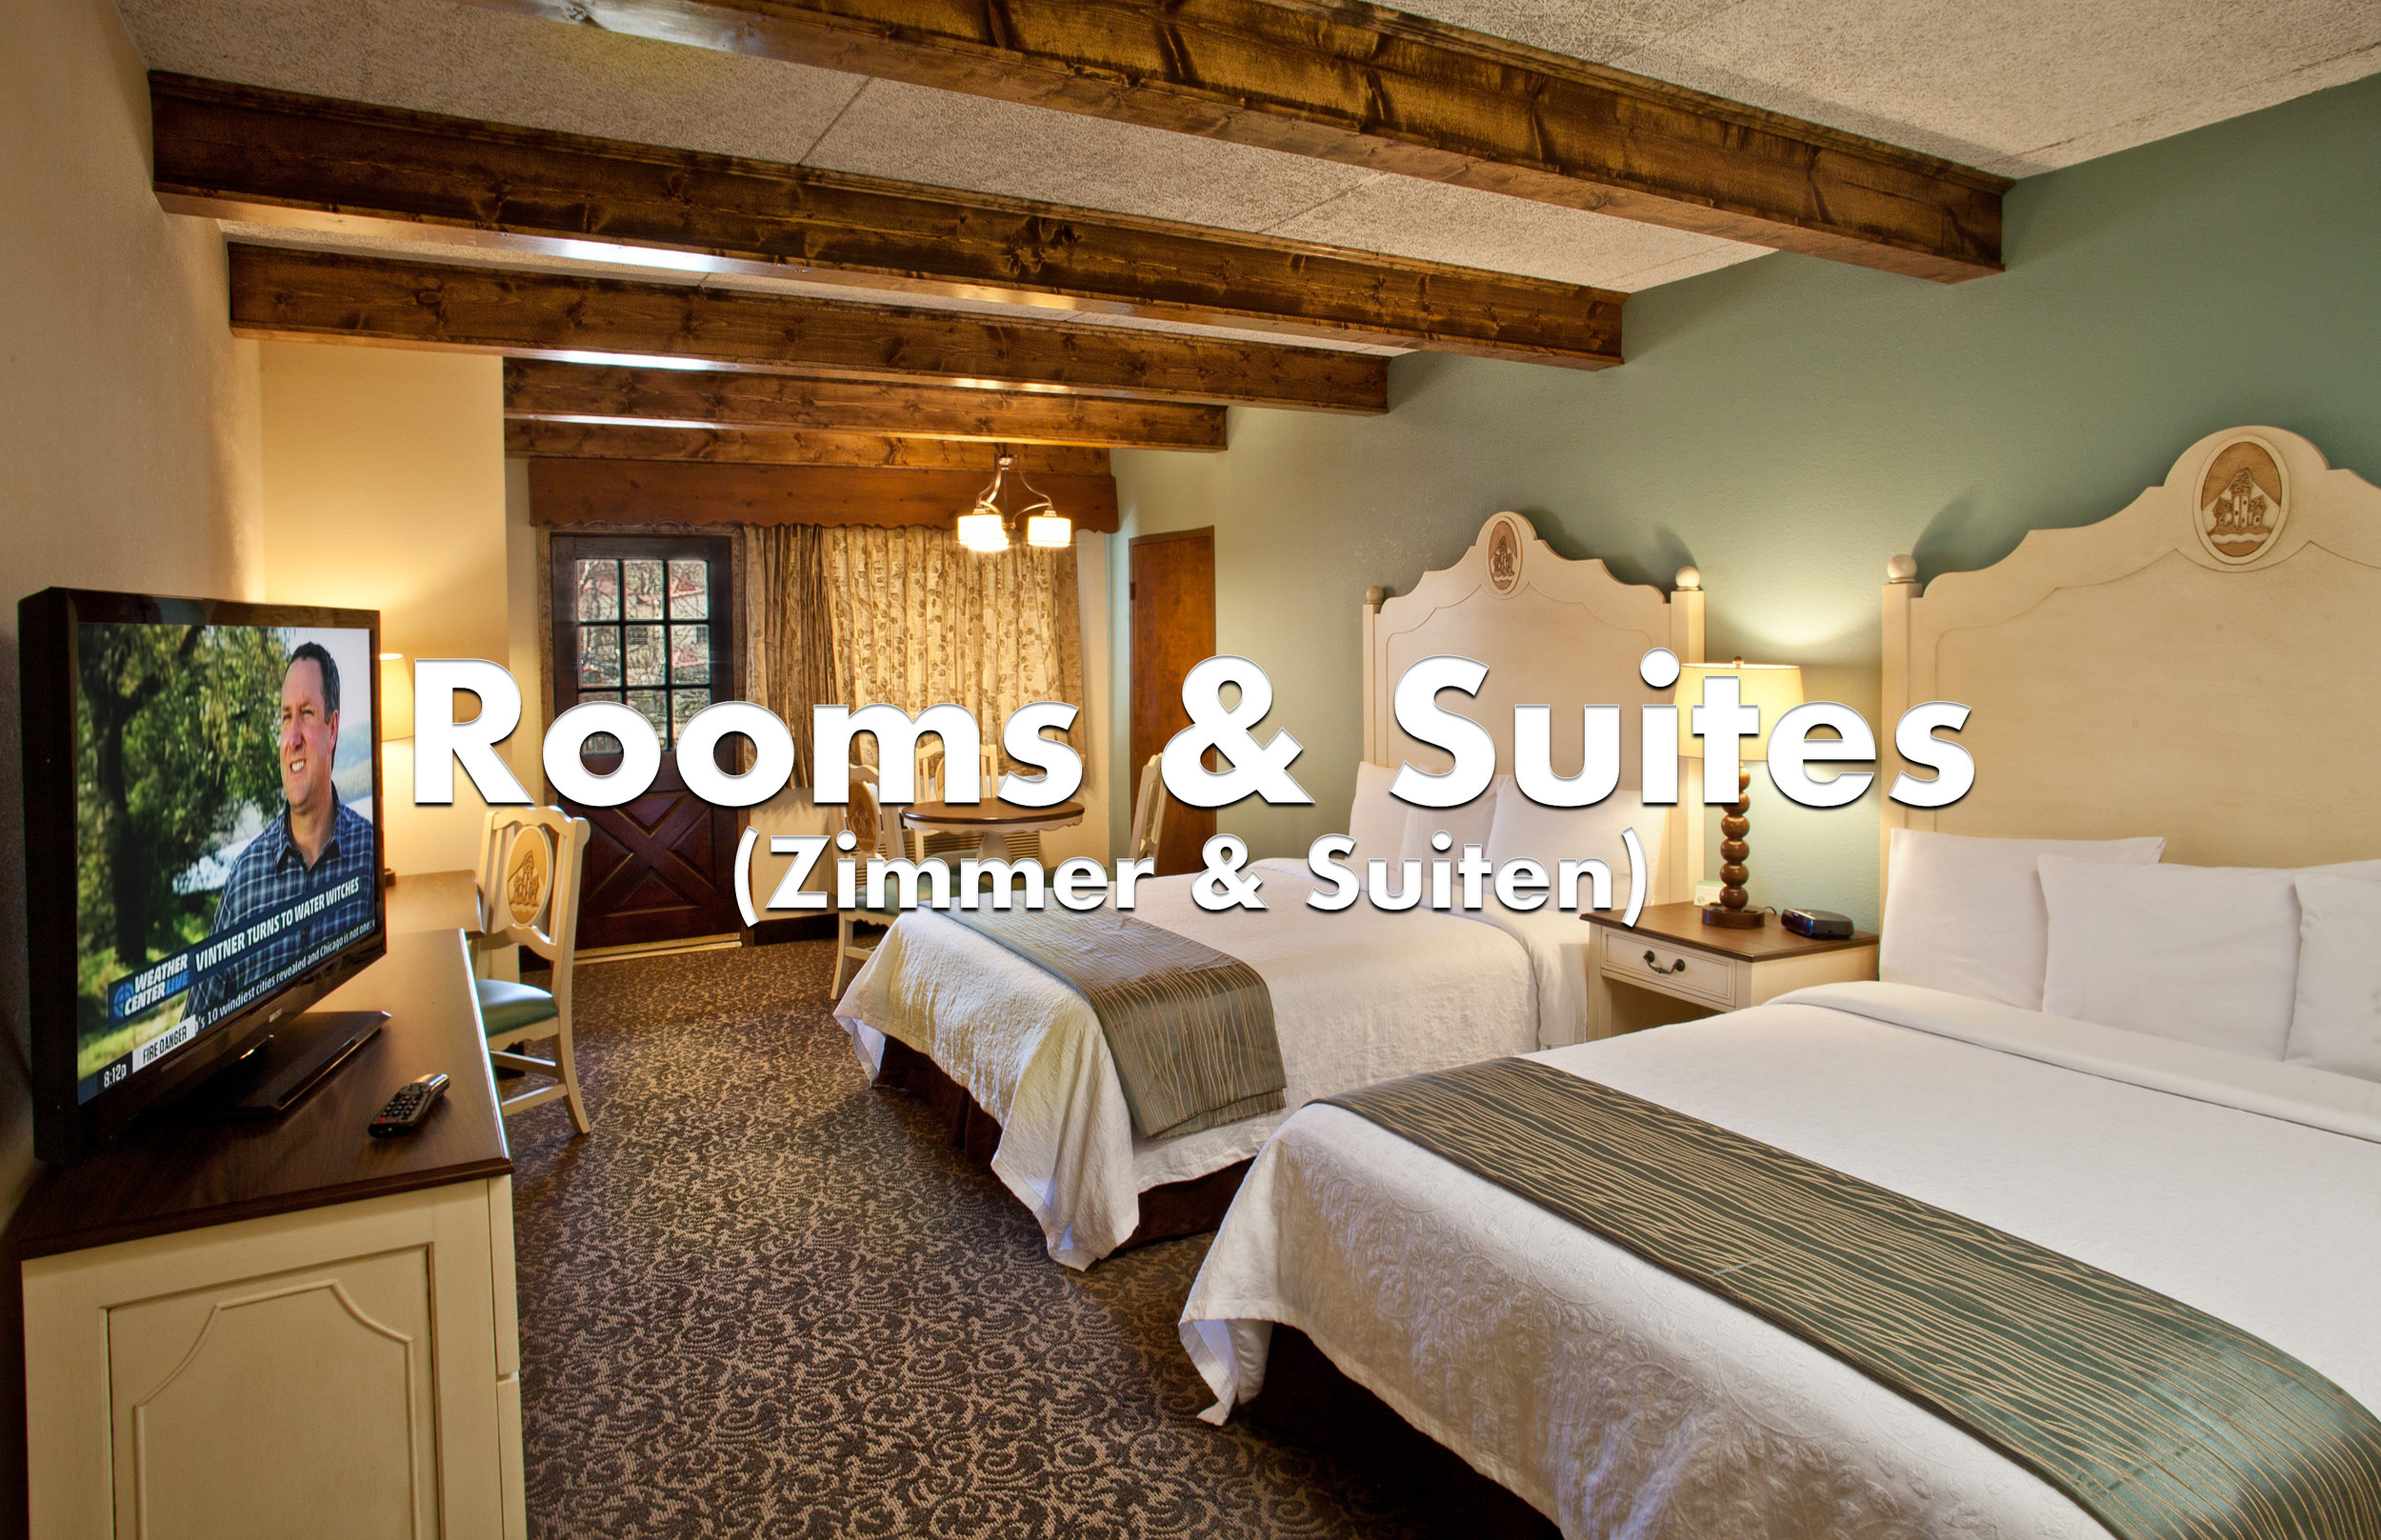 Rooms-Suites Menu v3 White v2.jpg